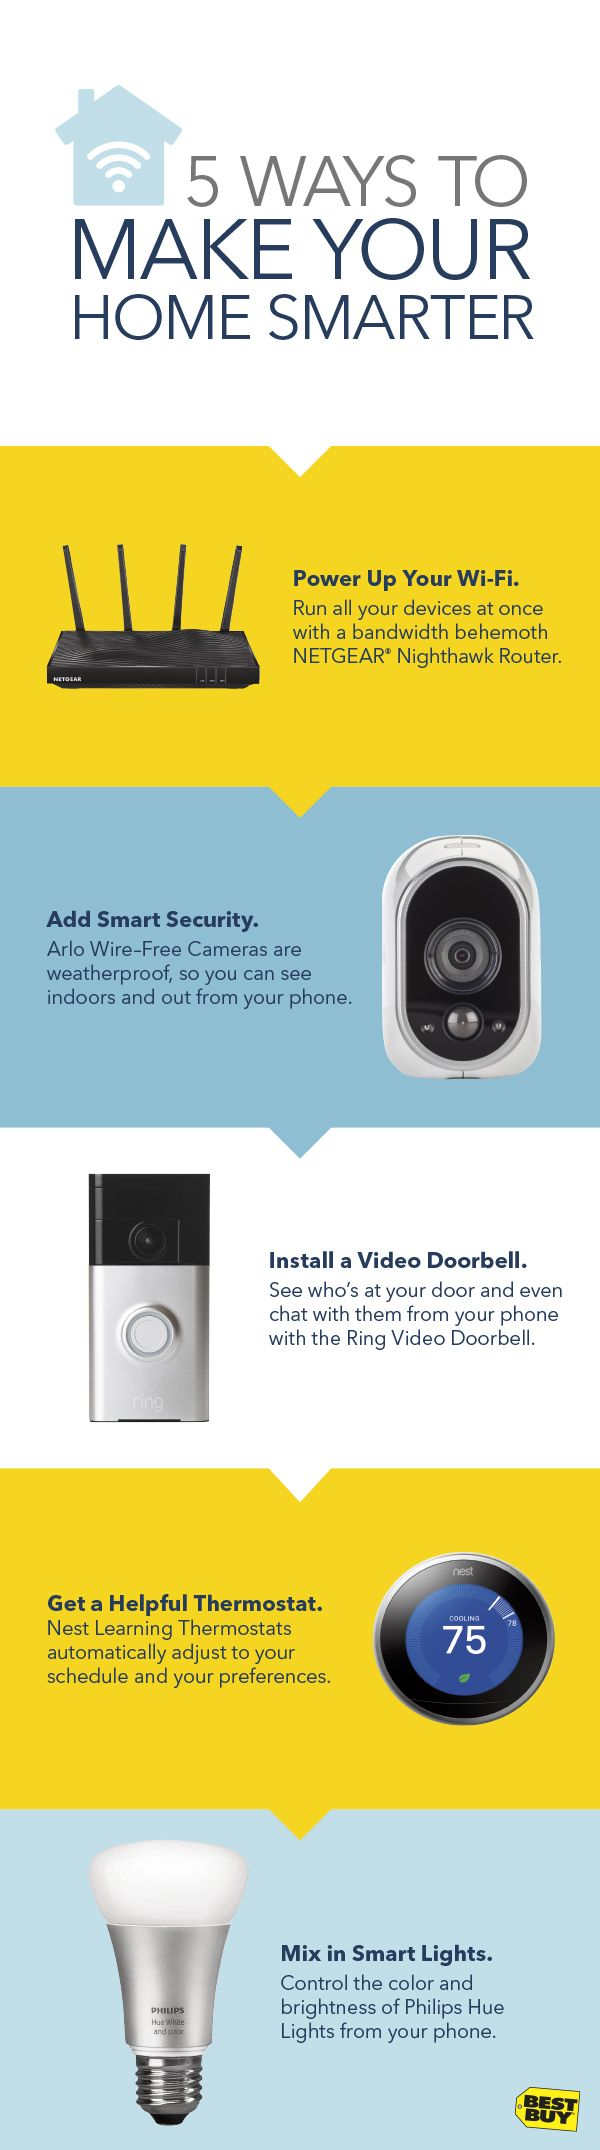 Every house can be brilliant. You just have to give it the chance. So whether you're planning an easy upgrade, a complete remodel or an upcoming move, the right smart devices can boost your house's IQ. The NETGEAR Nighthawk router, Arlo Wire-Free Security Cameras, Ring Video Doorbell, Nest Learning Thermostat and Philips Hue Smart Lights can keep you in control and help you do more around the house. All from your phone. Shop Connected Home at Best Buy for more smart devices and helpful tips.